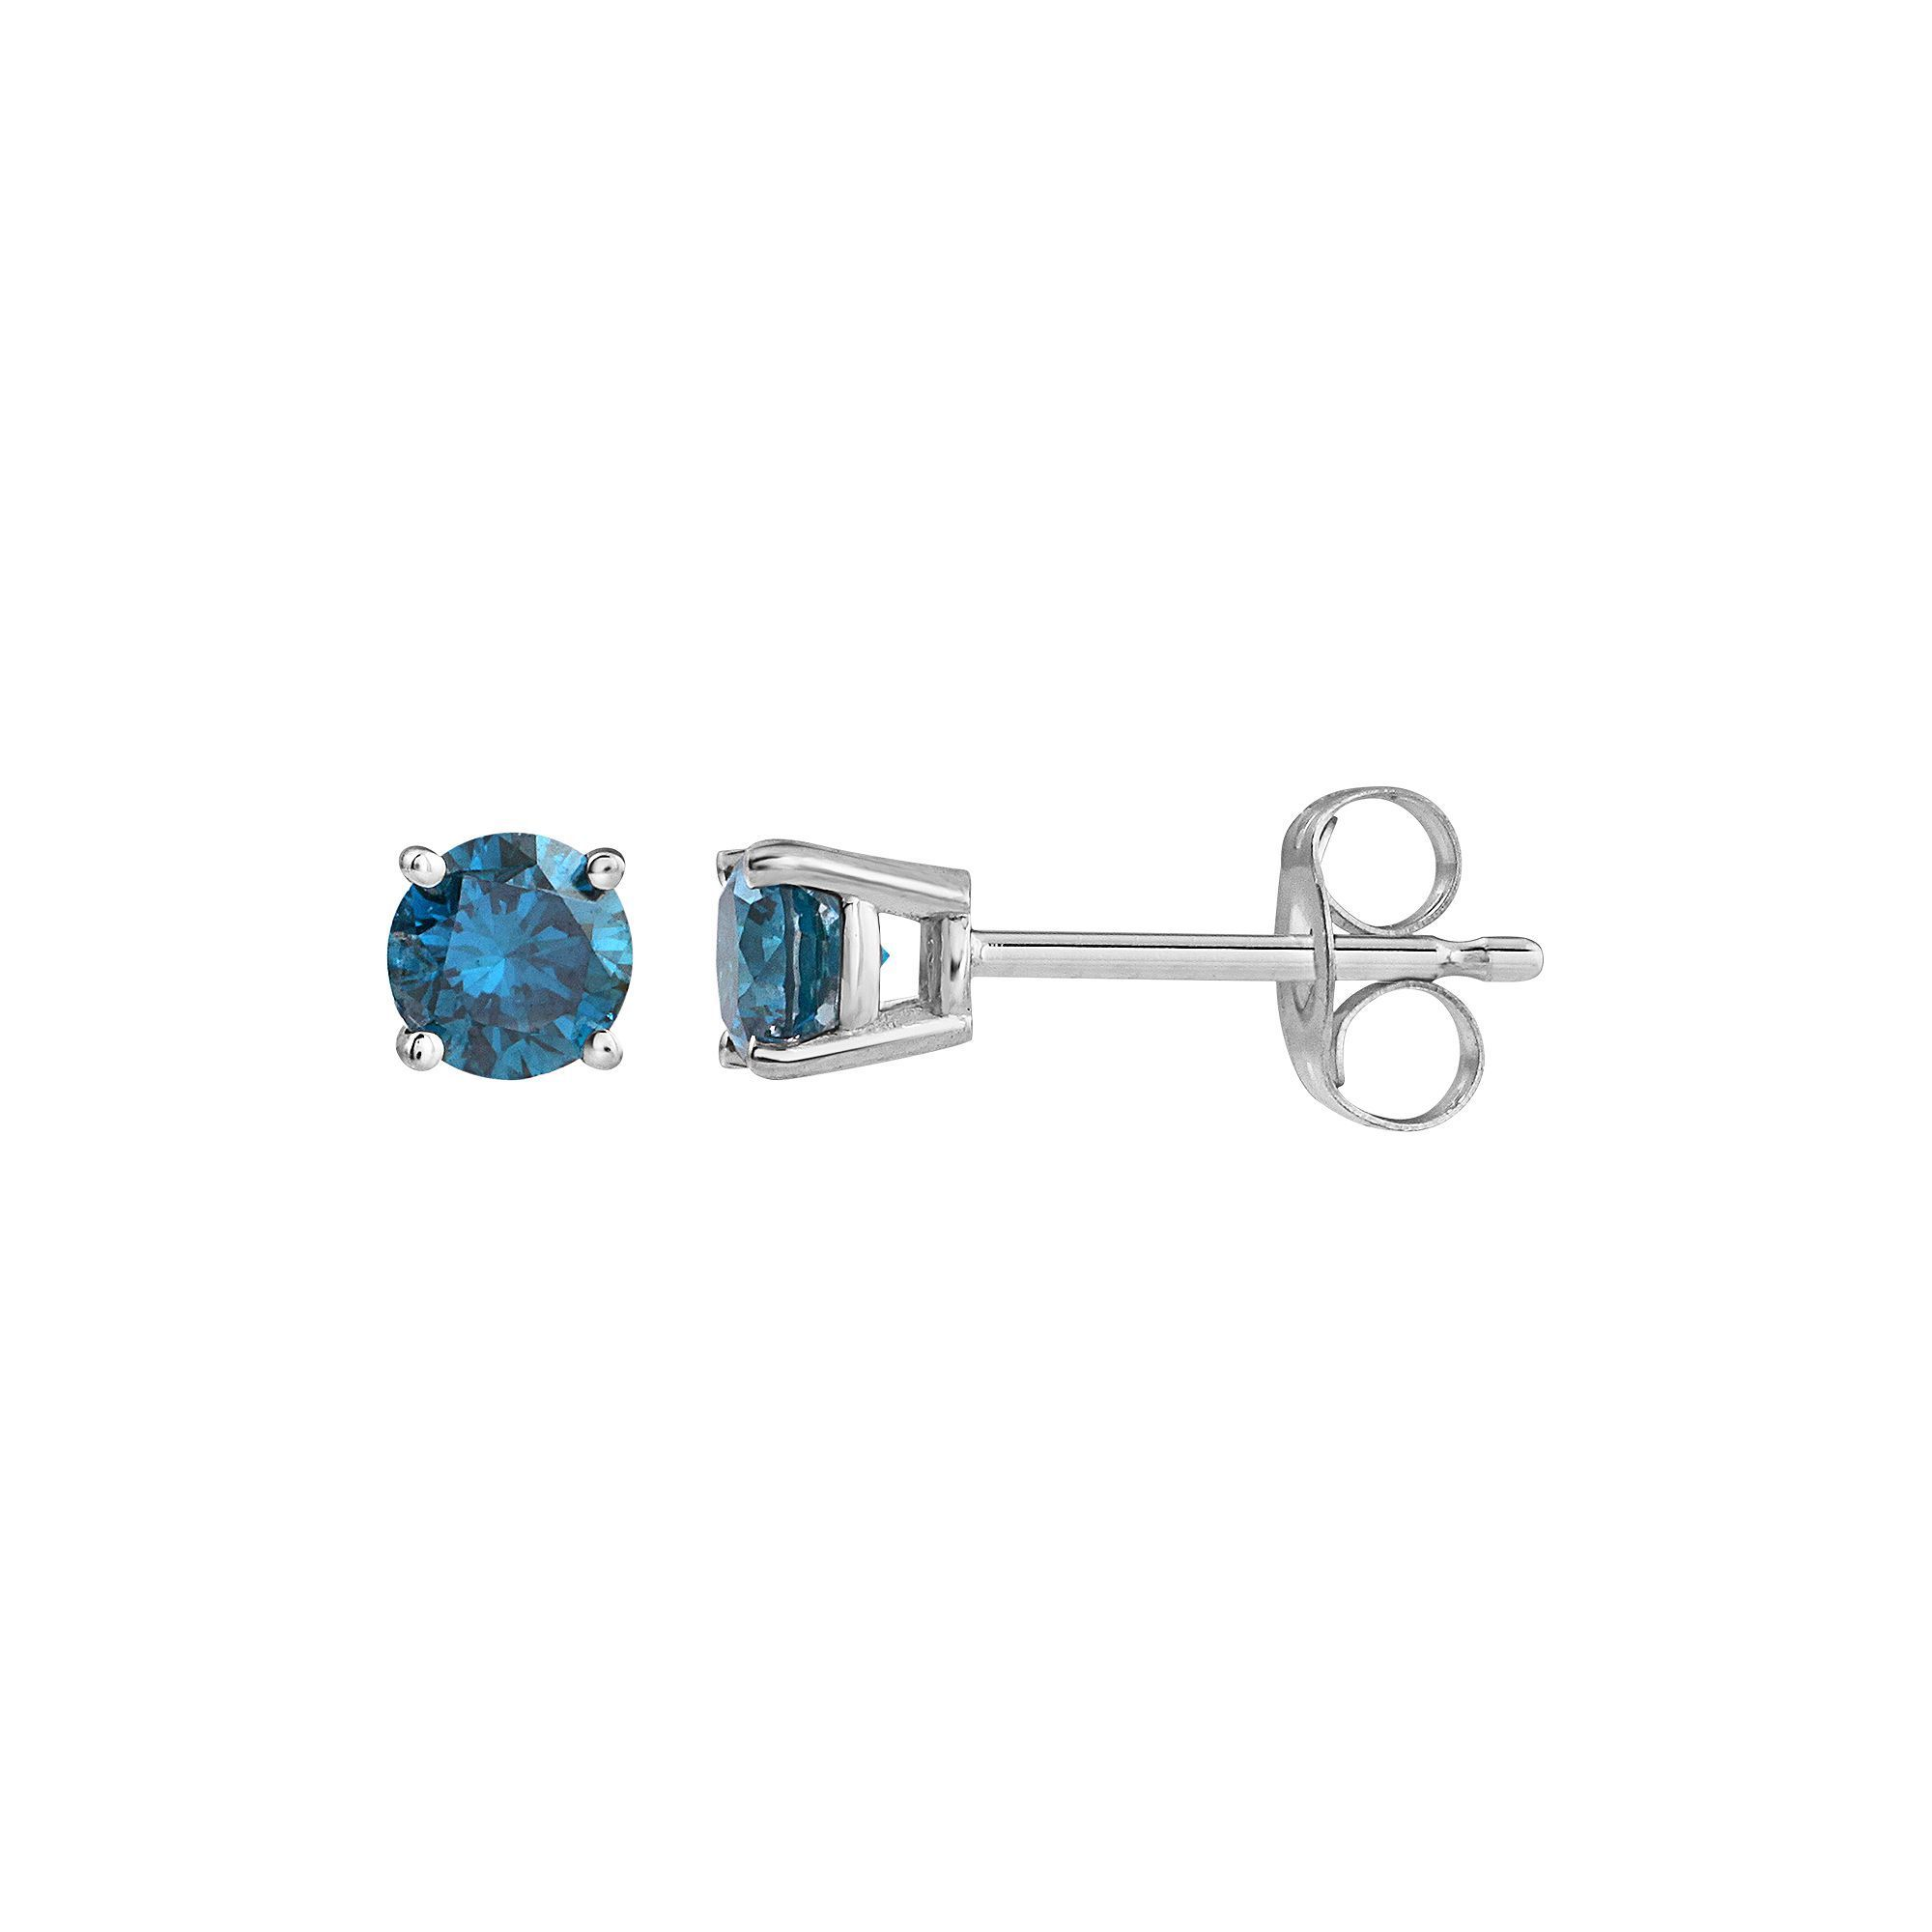 sterling ring london hires gb silver amp en diamond of stud and blue white treasured links